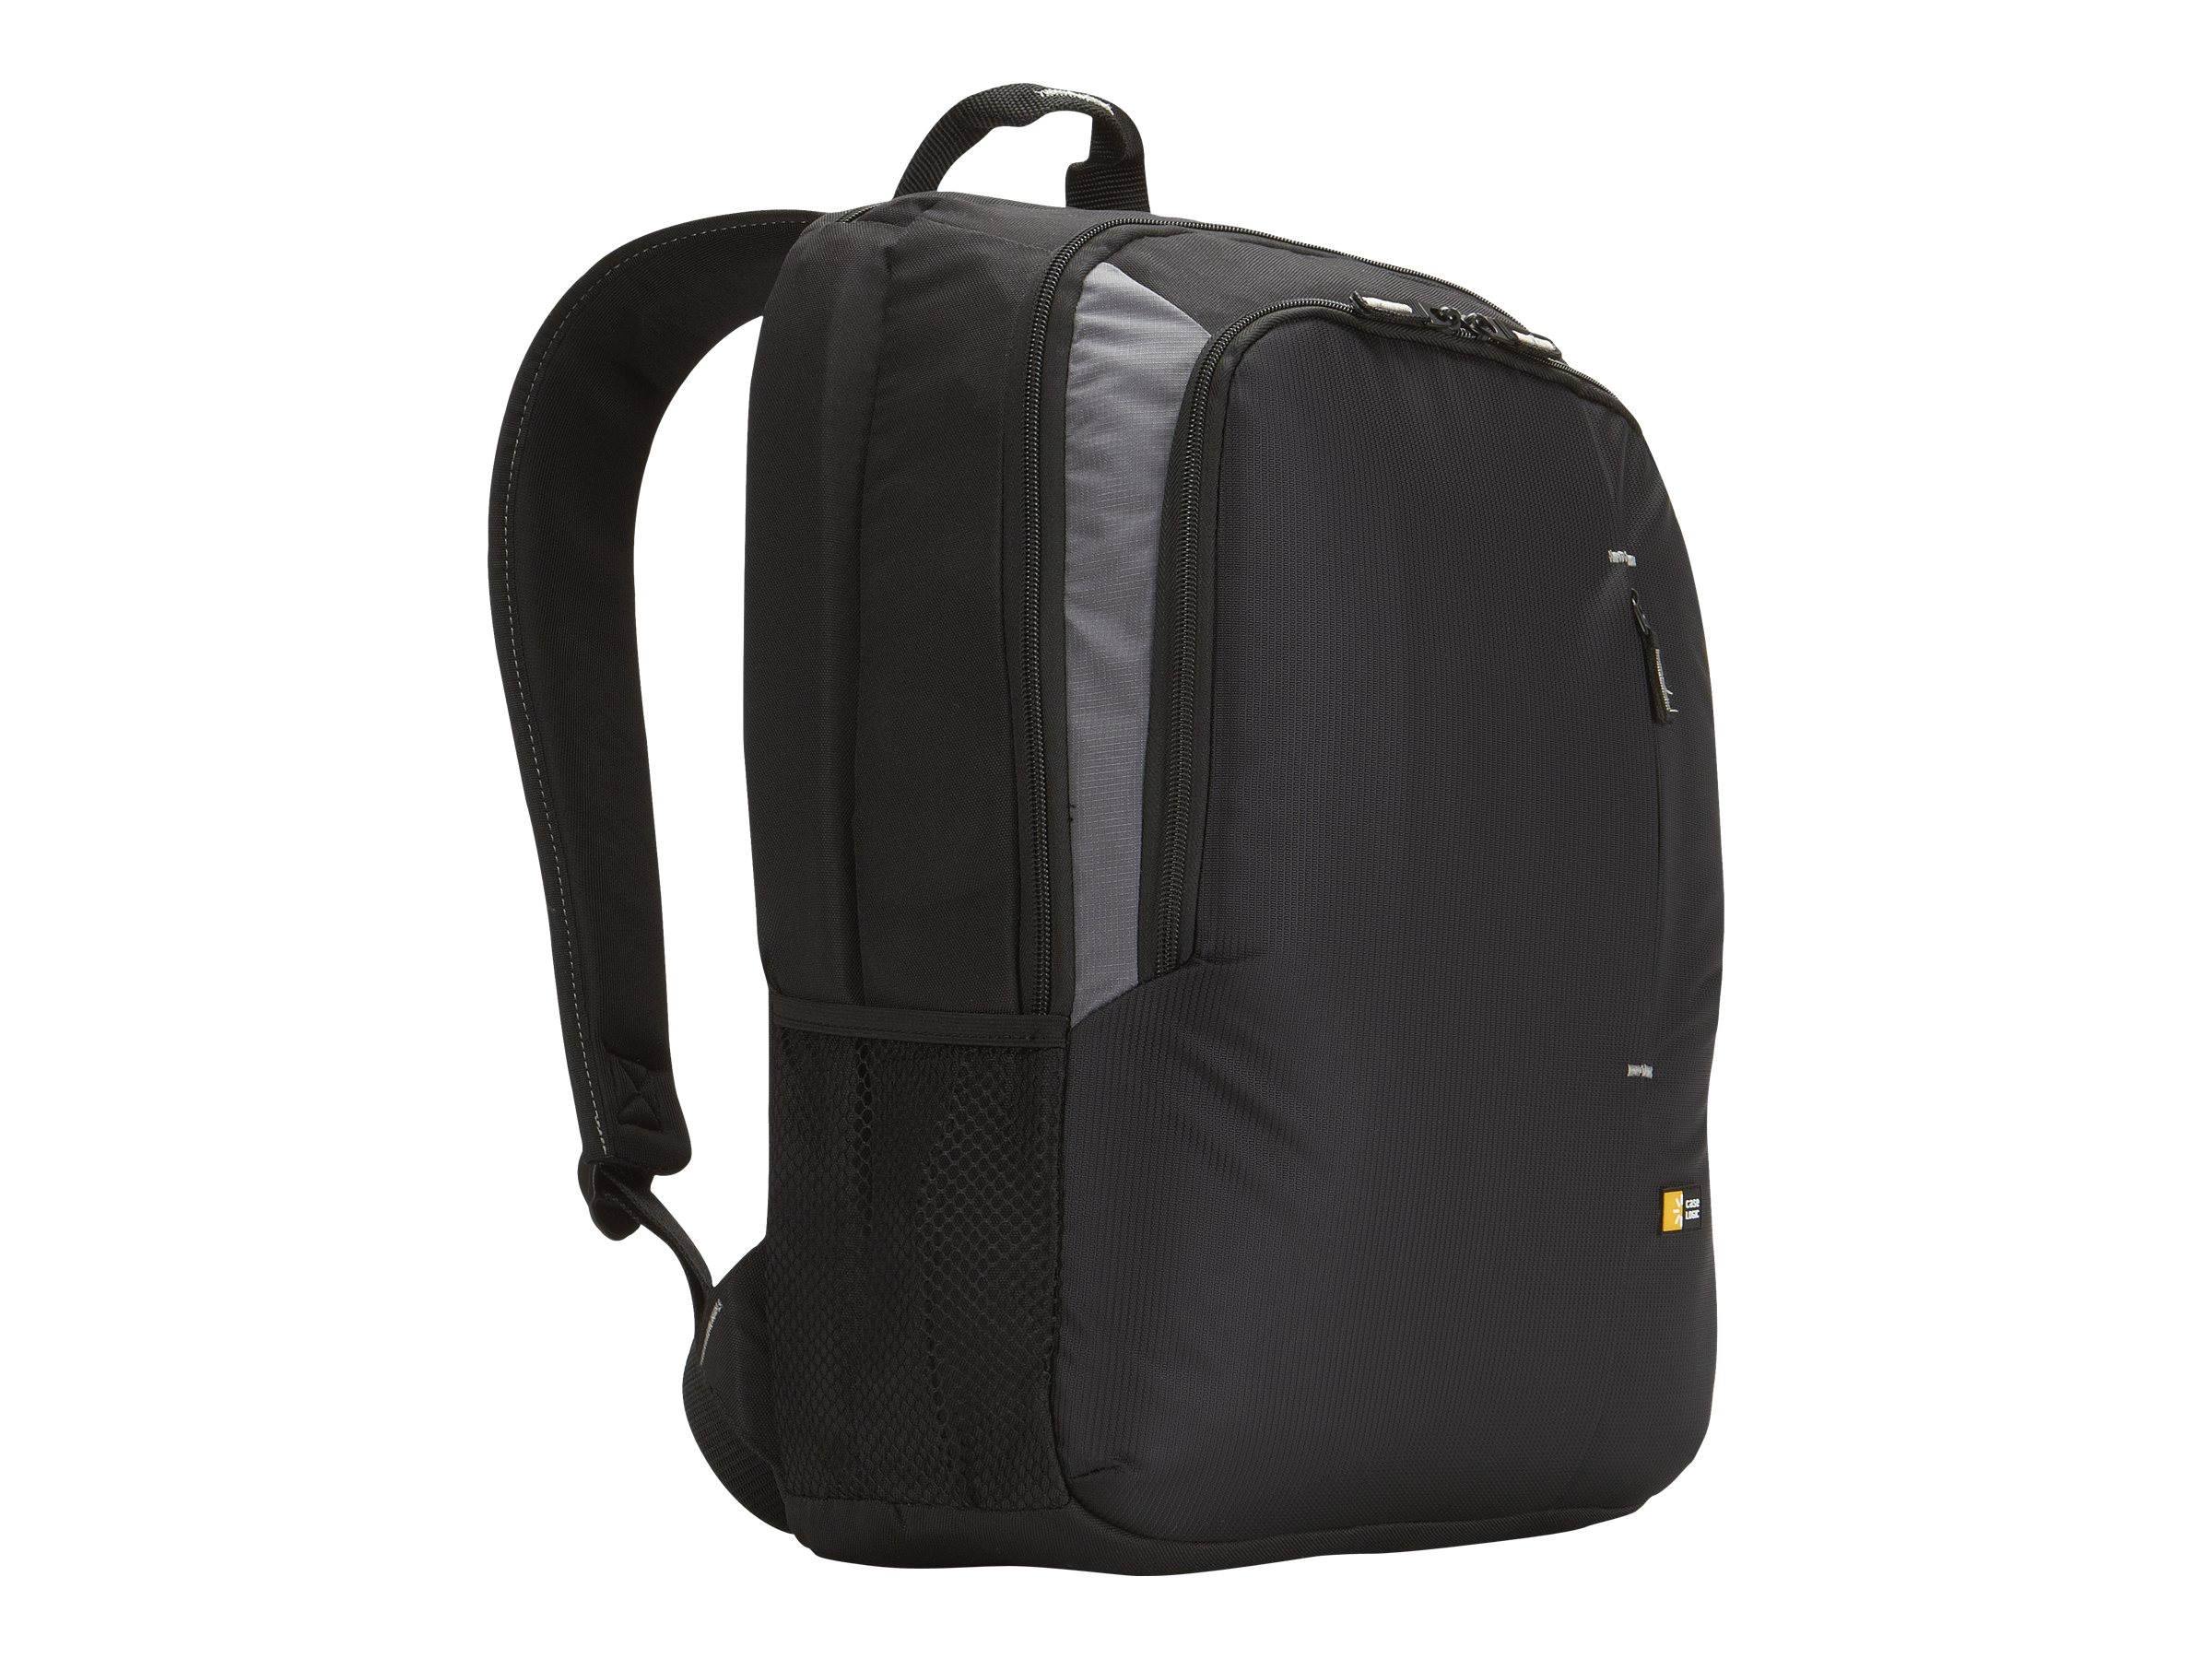 Case Logic 17 Laptop Backpack, Black, VNB-217BLACK, 10097150, Carrying Cases - Notebook